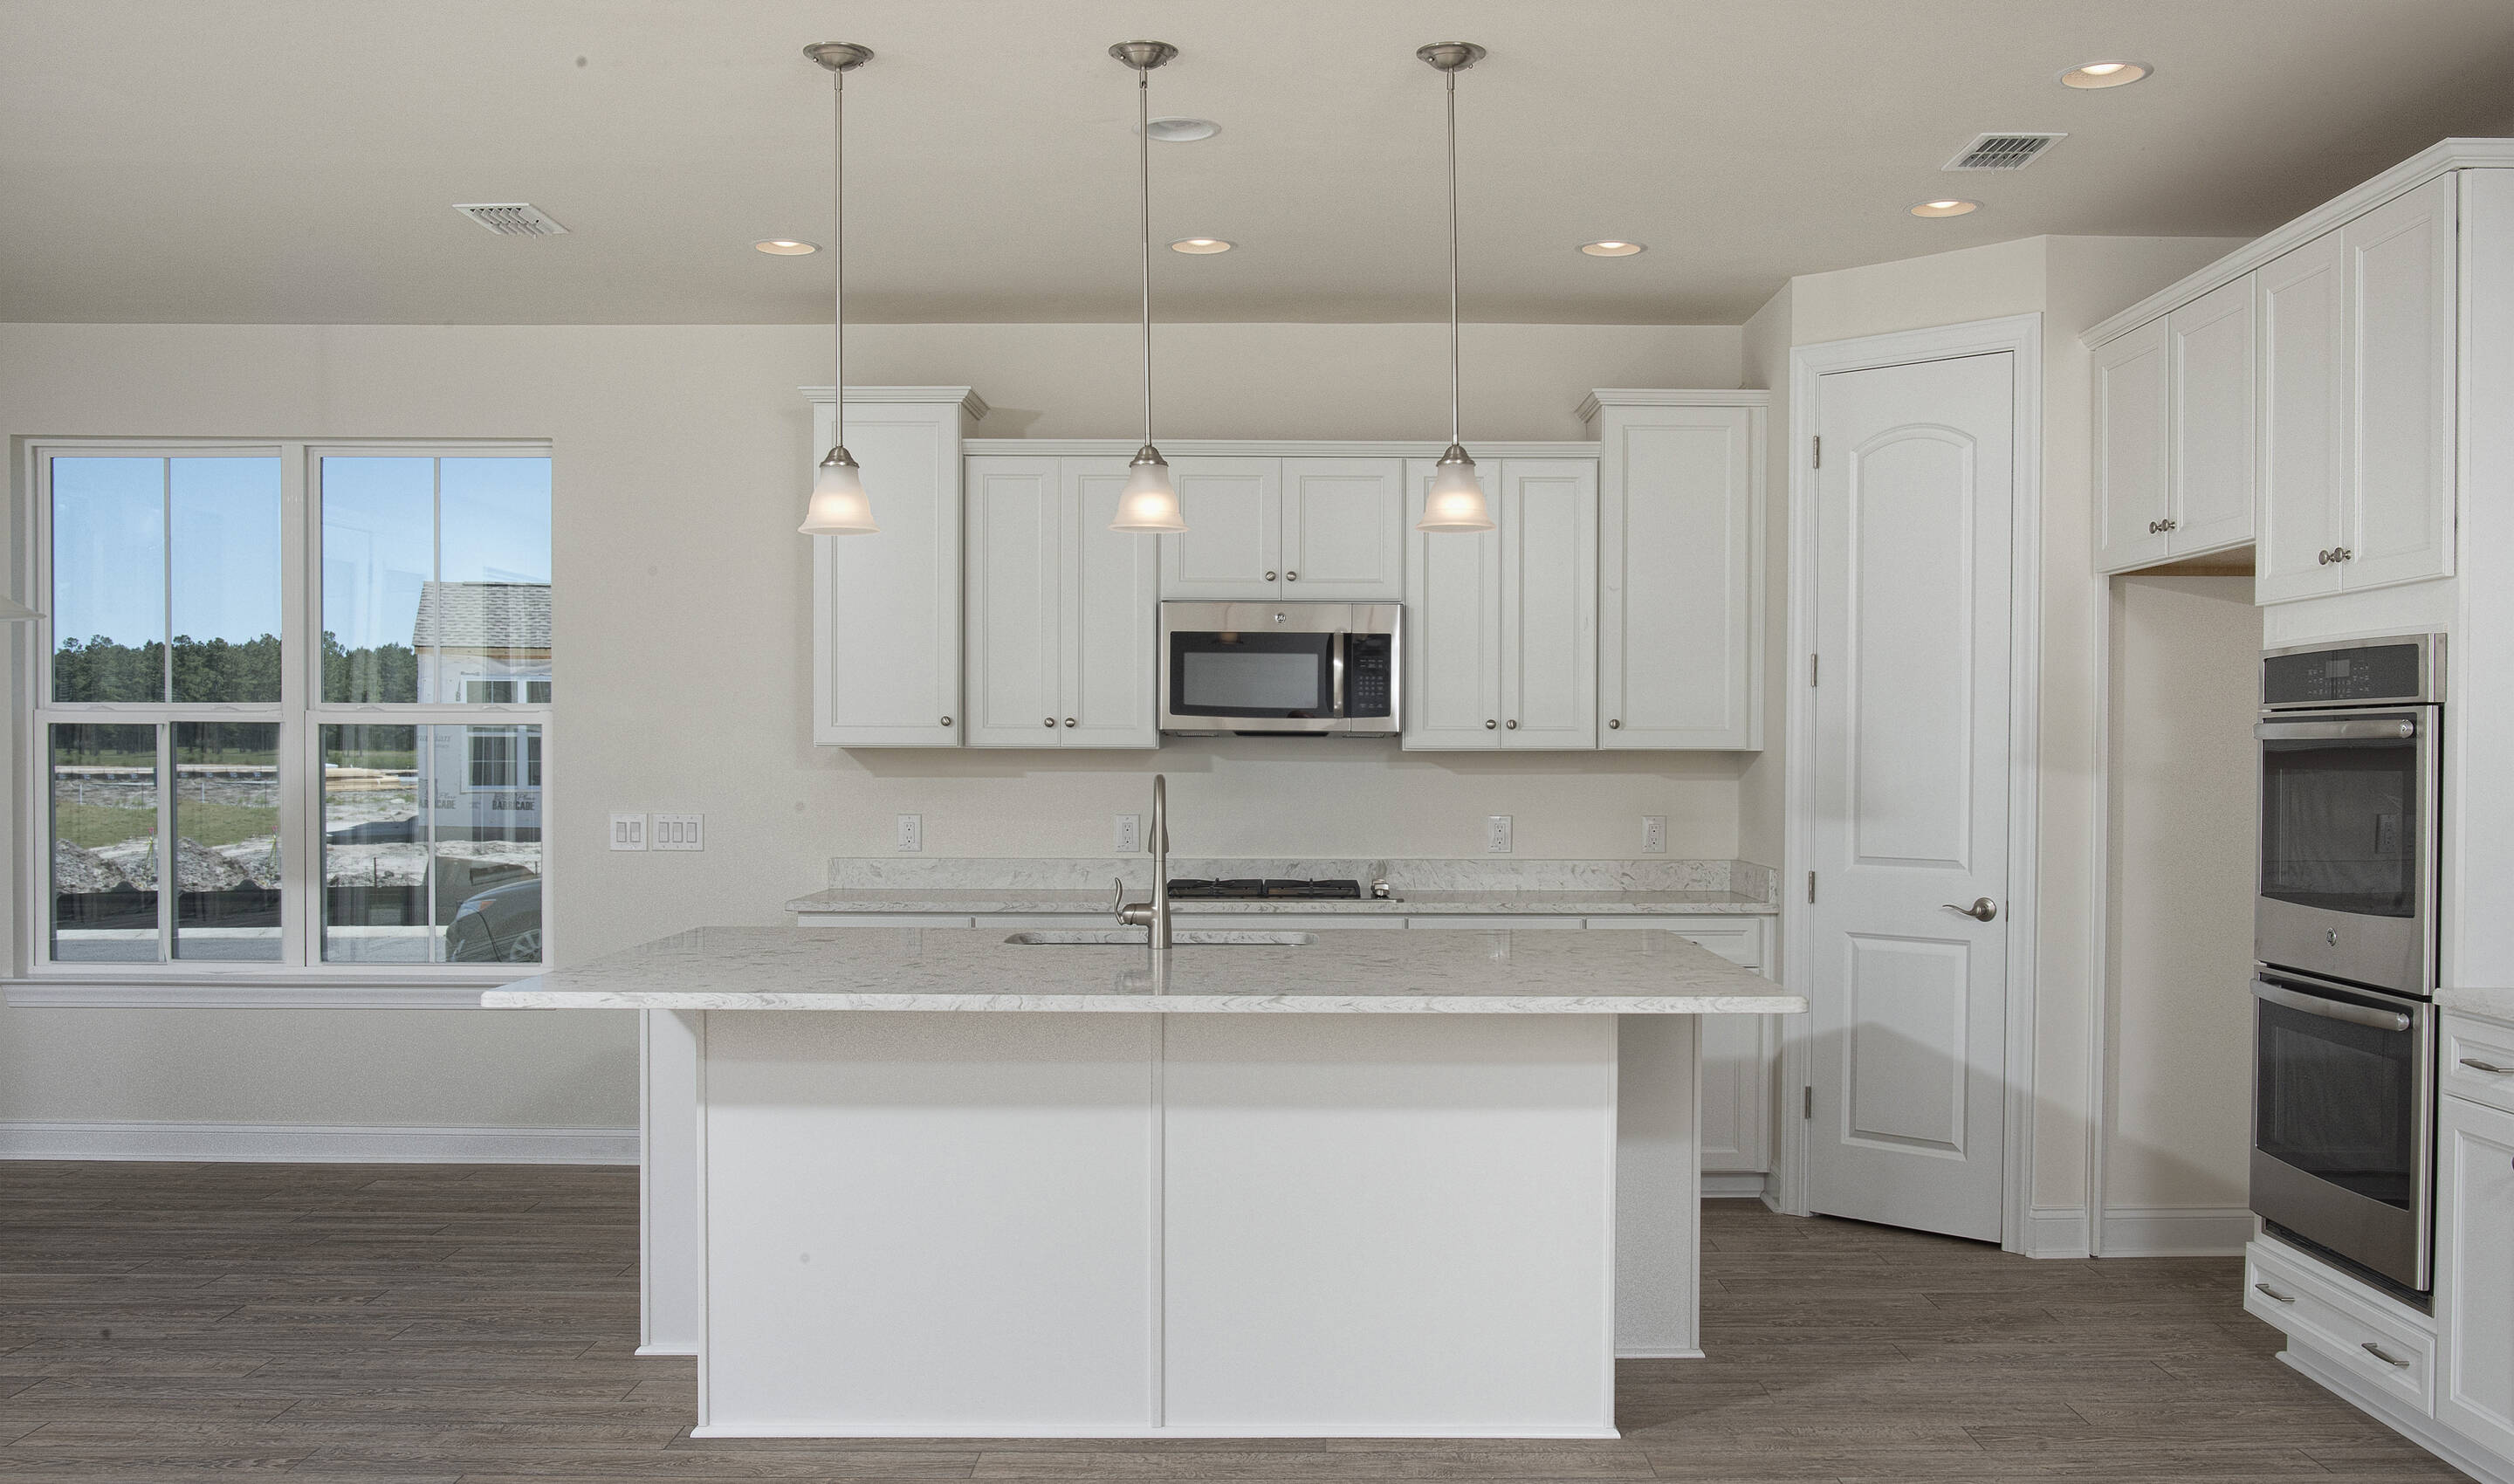 kitchen2 dorchester 544 lot 202 new homes at cane bay